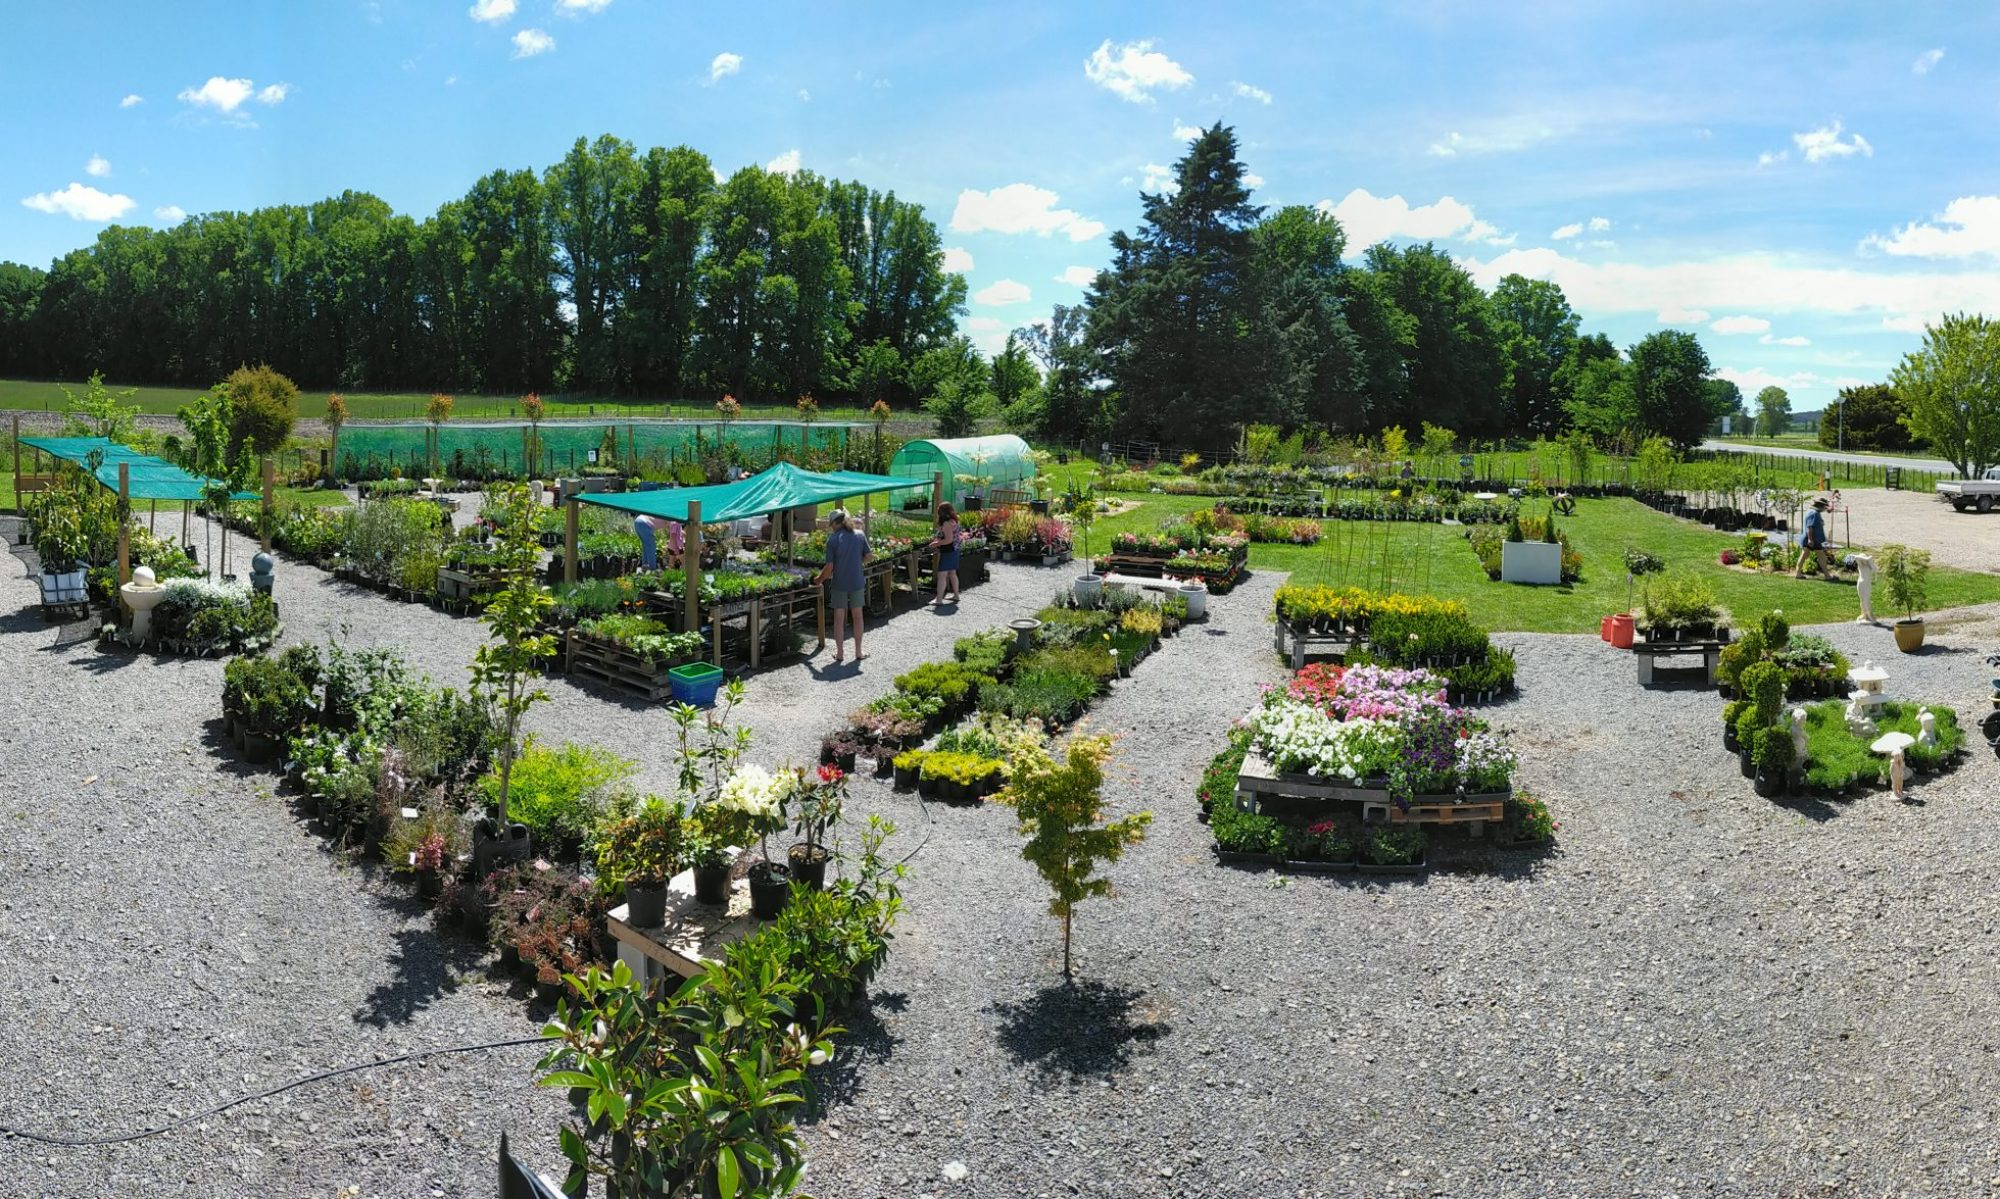 Little Gem Garden Centre